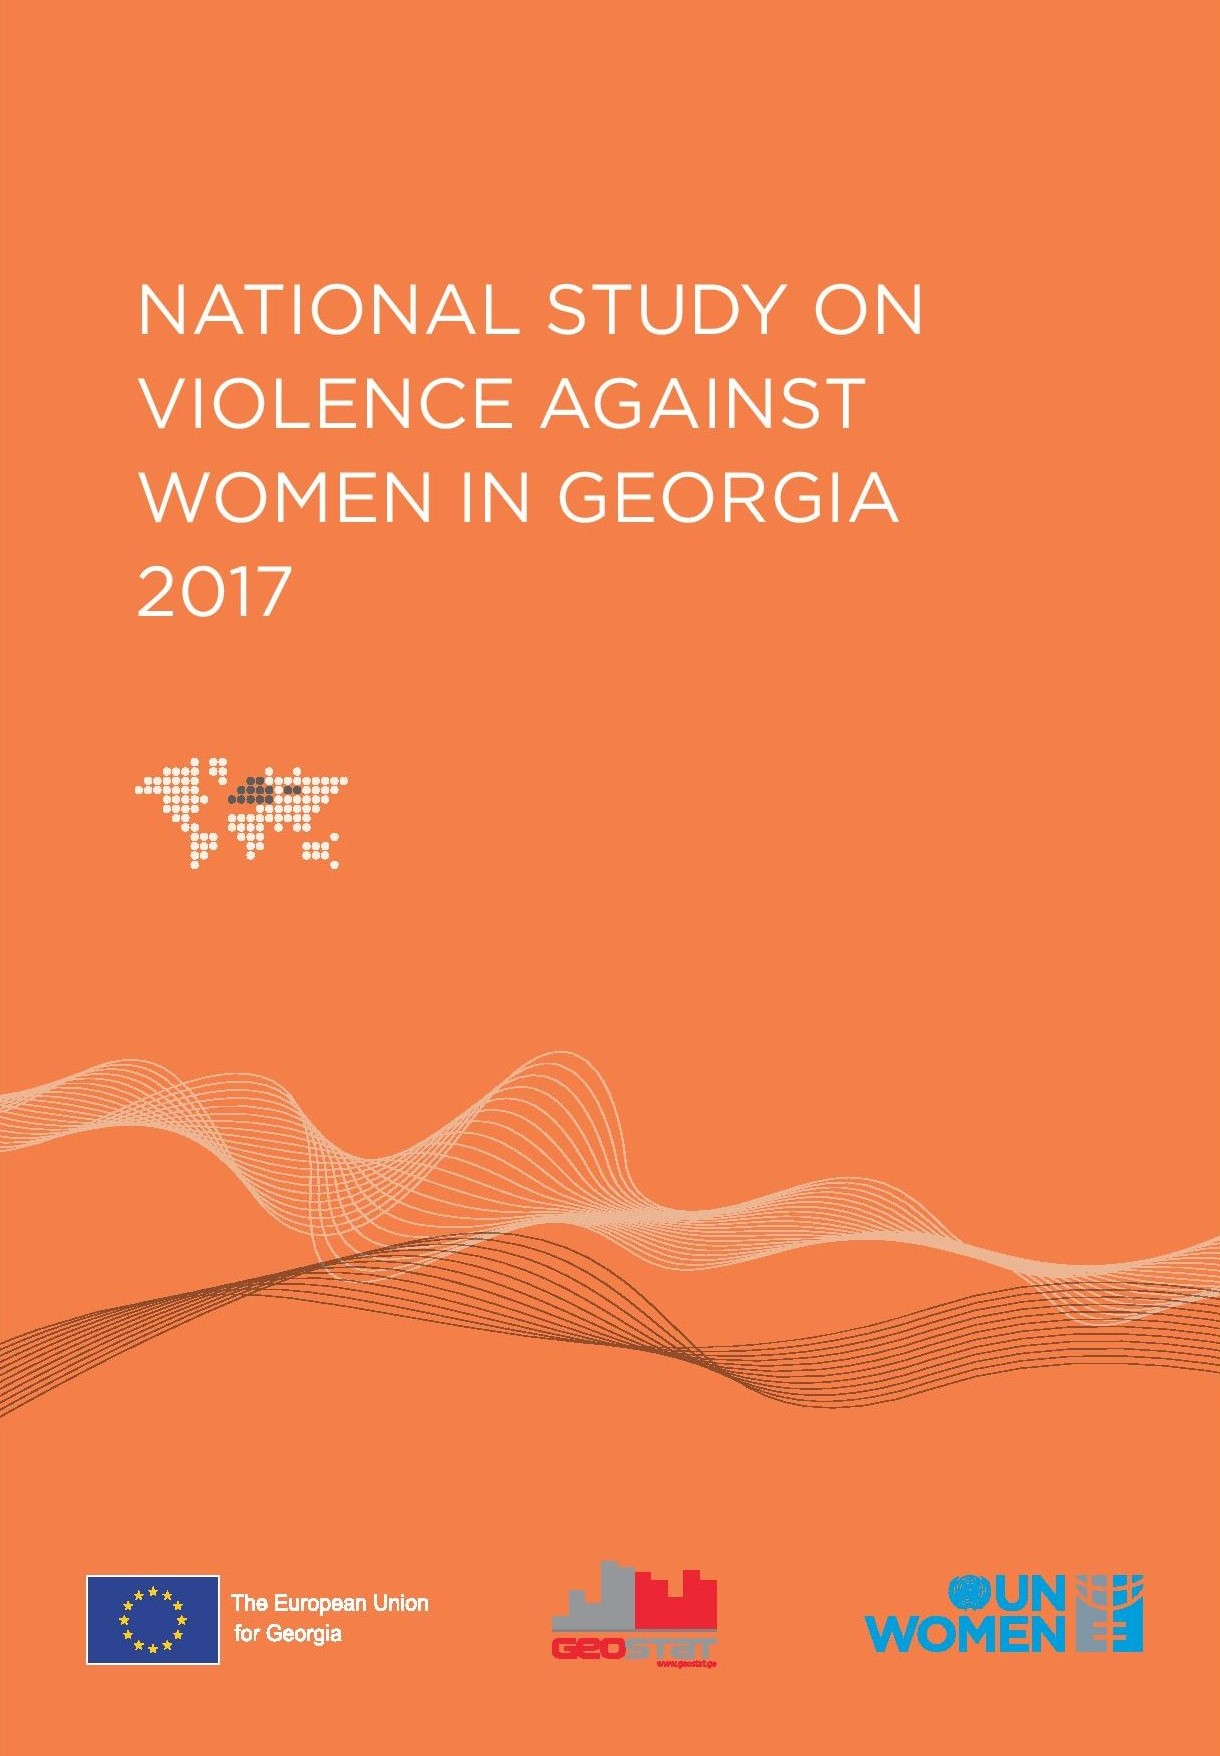 The National Study on Violence against Women in Georgia